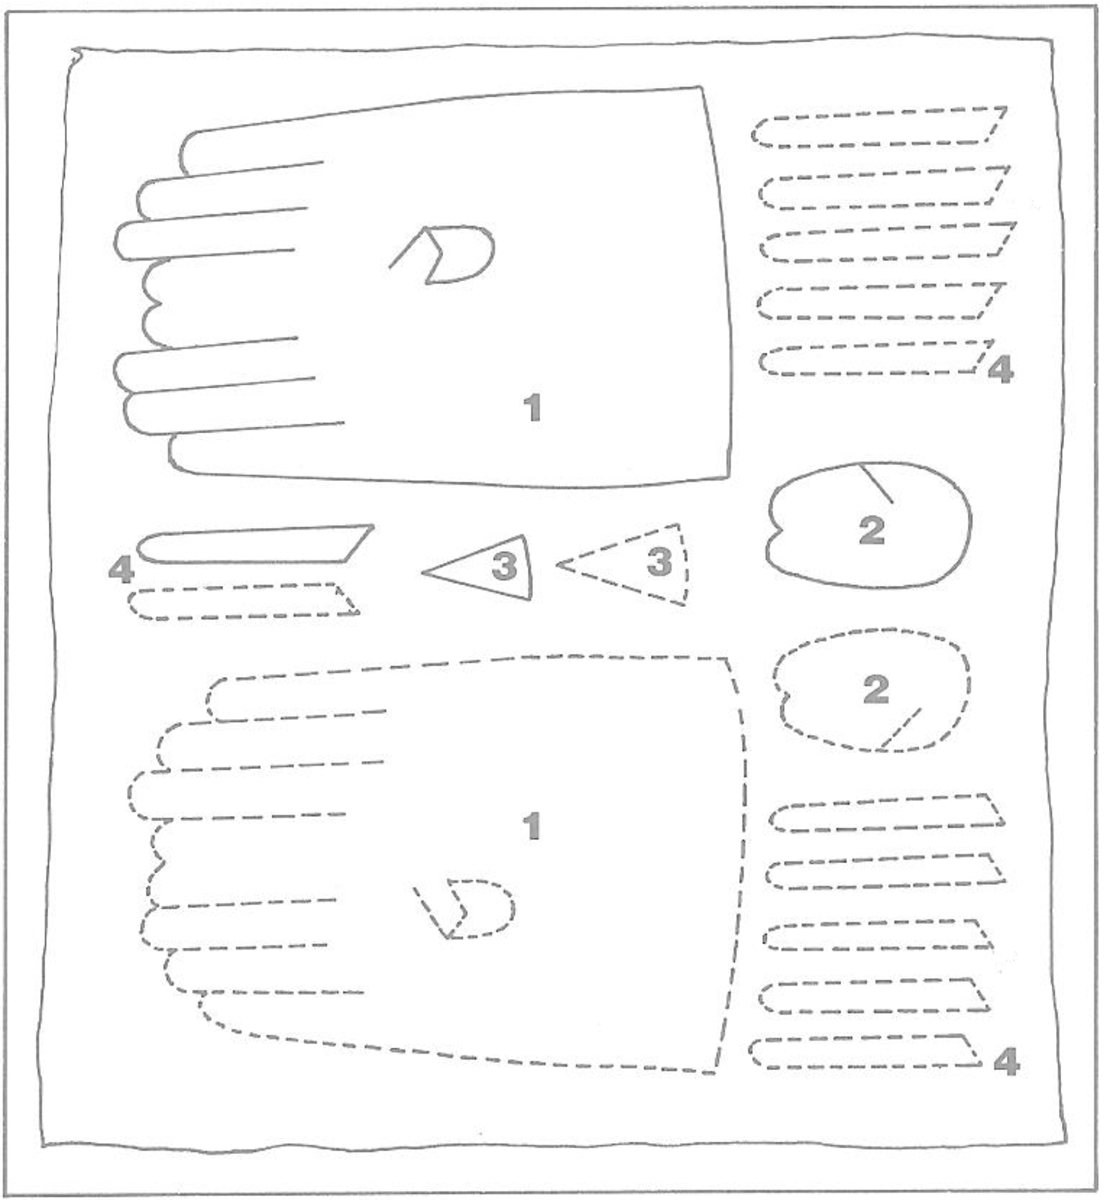 Figure 2: Pattern Layout